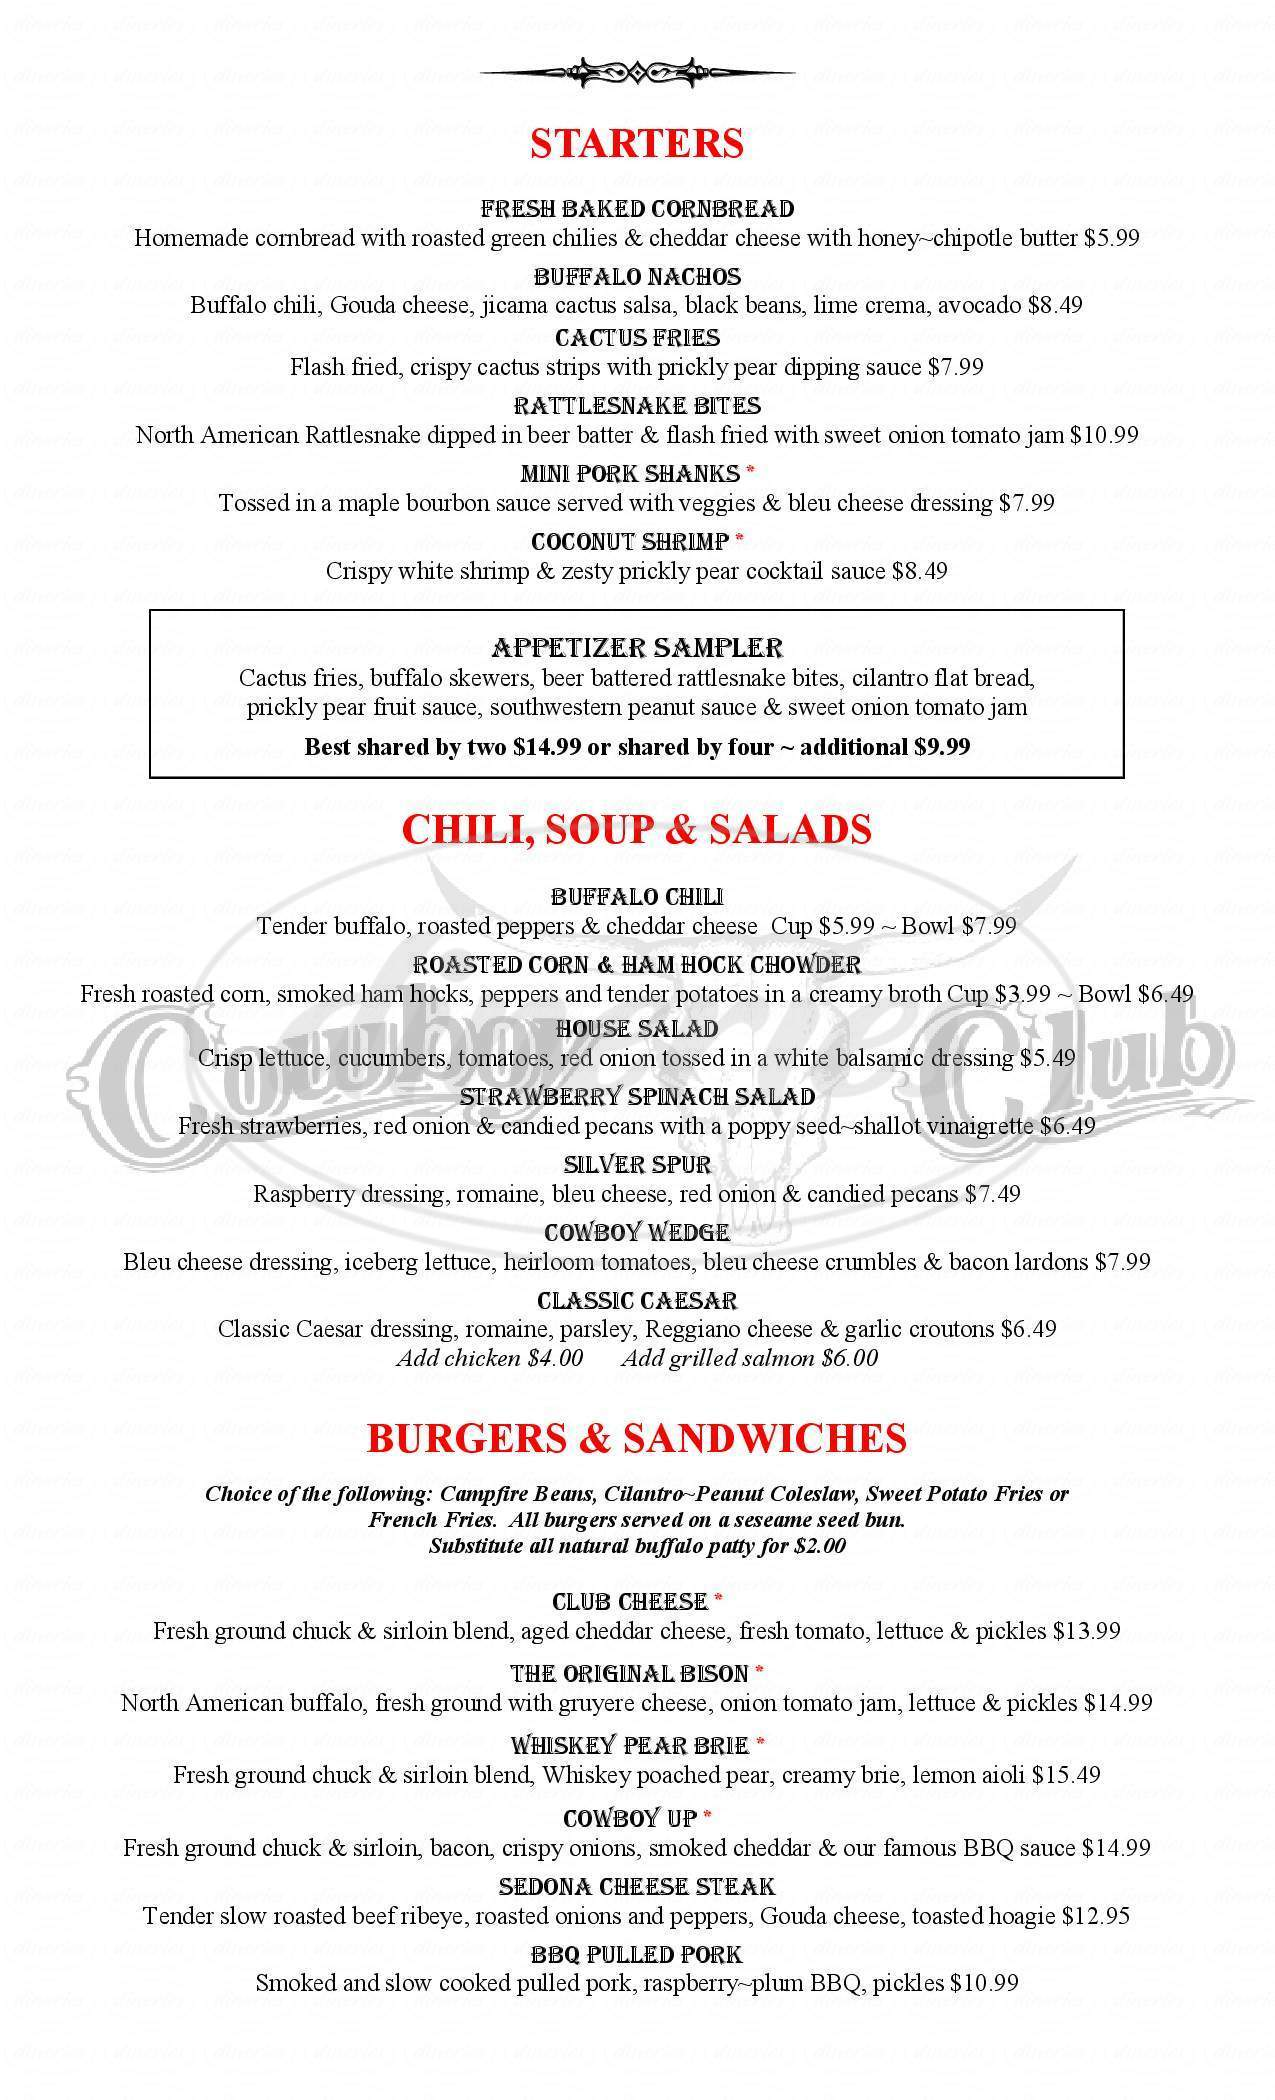 menu for Cowboy Club Grille & Spirits